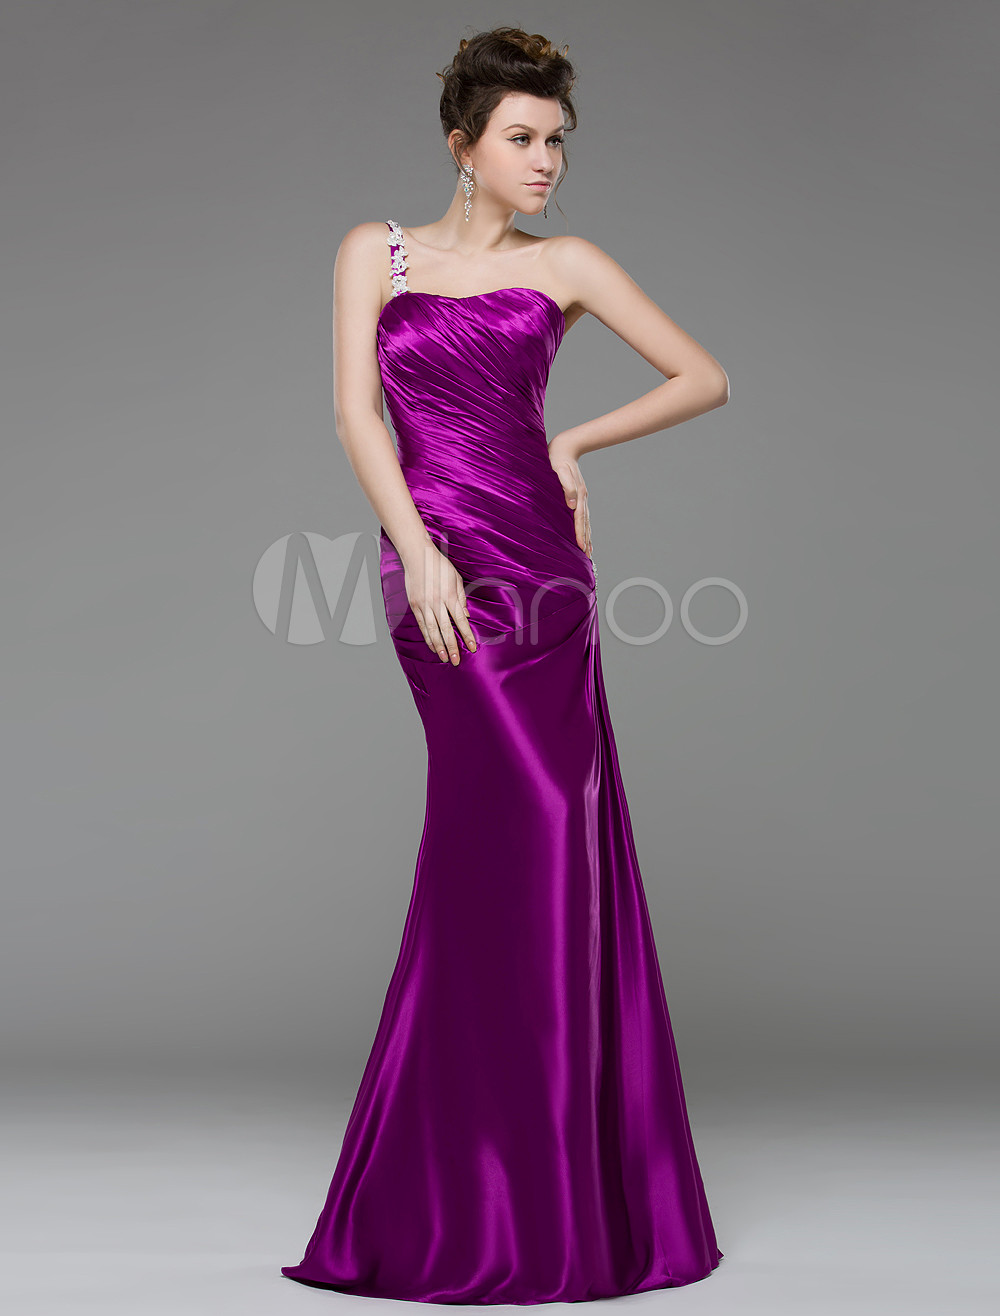 25d1609e4b5 Magenta Evening Dress Mermaid One Strap Prom Dress Ruched Sweep ...